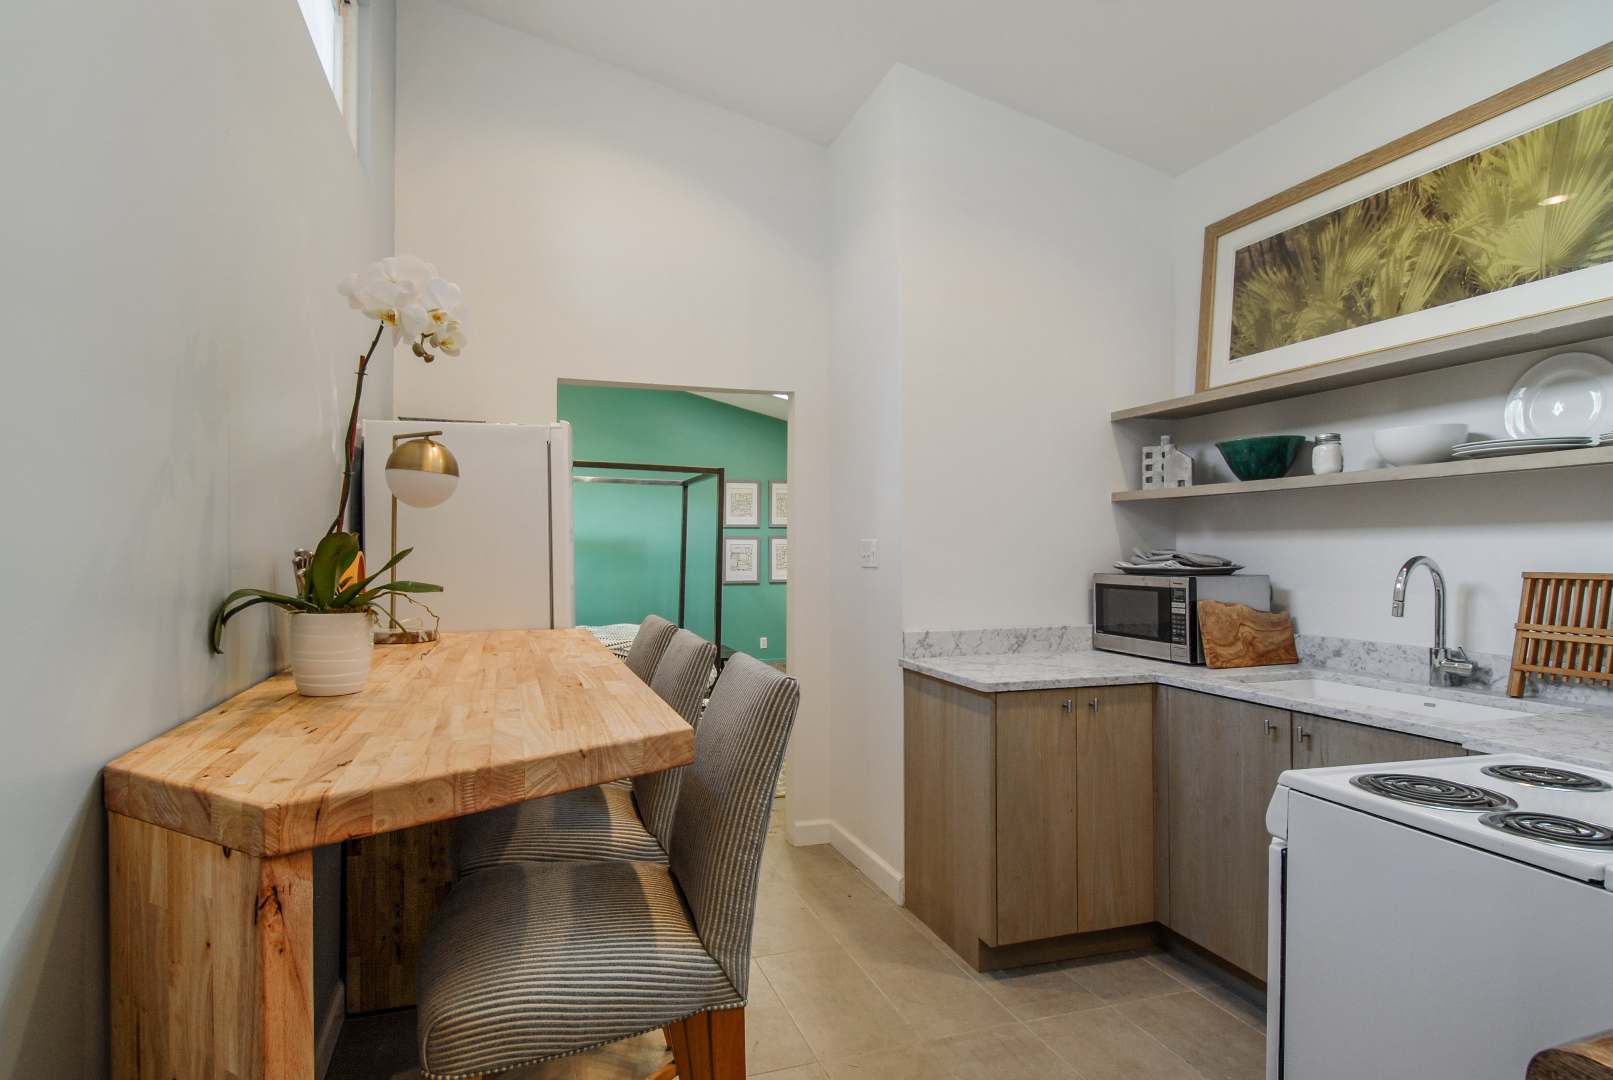 Uptown, Apartment, 1 beds, 1.0 baths, $1900 per month New Orleans Rental - devie image_5